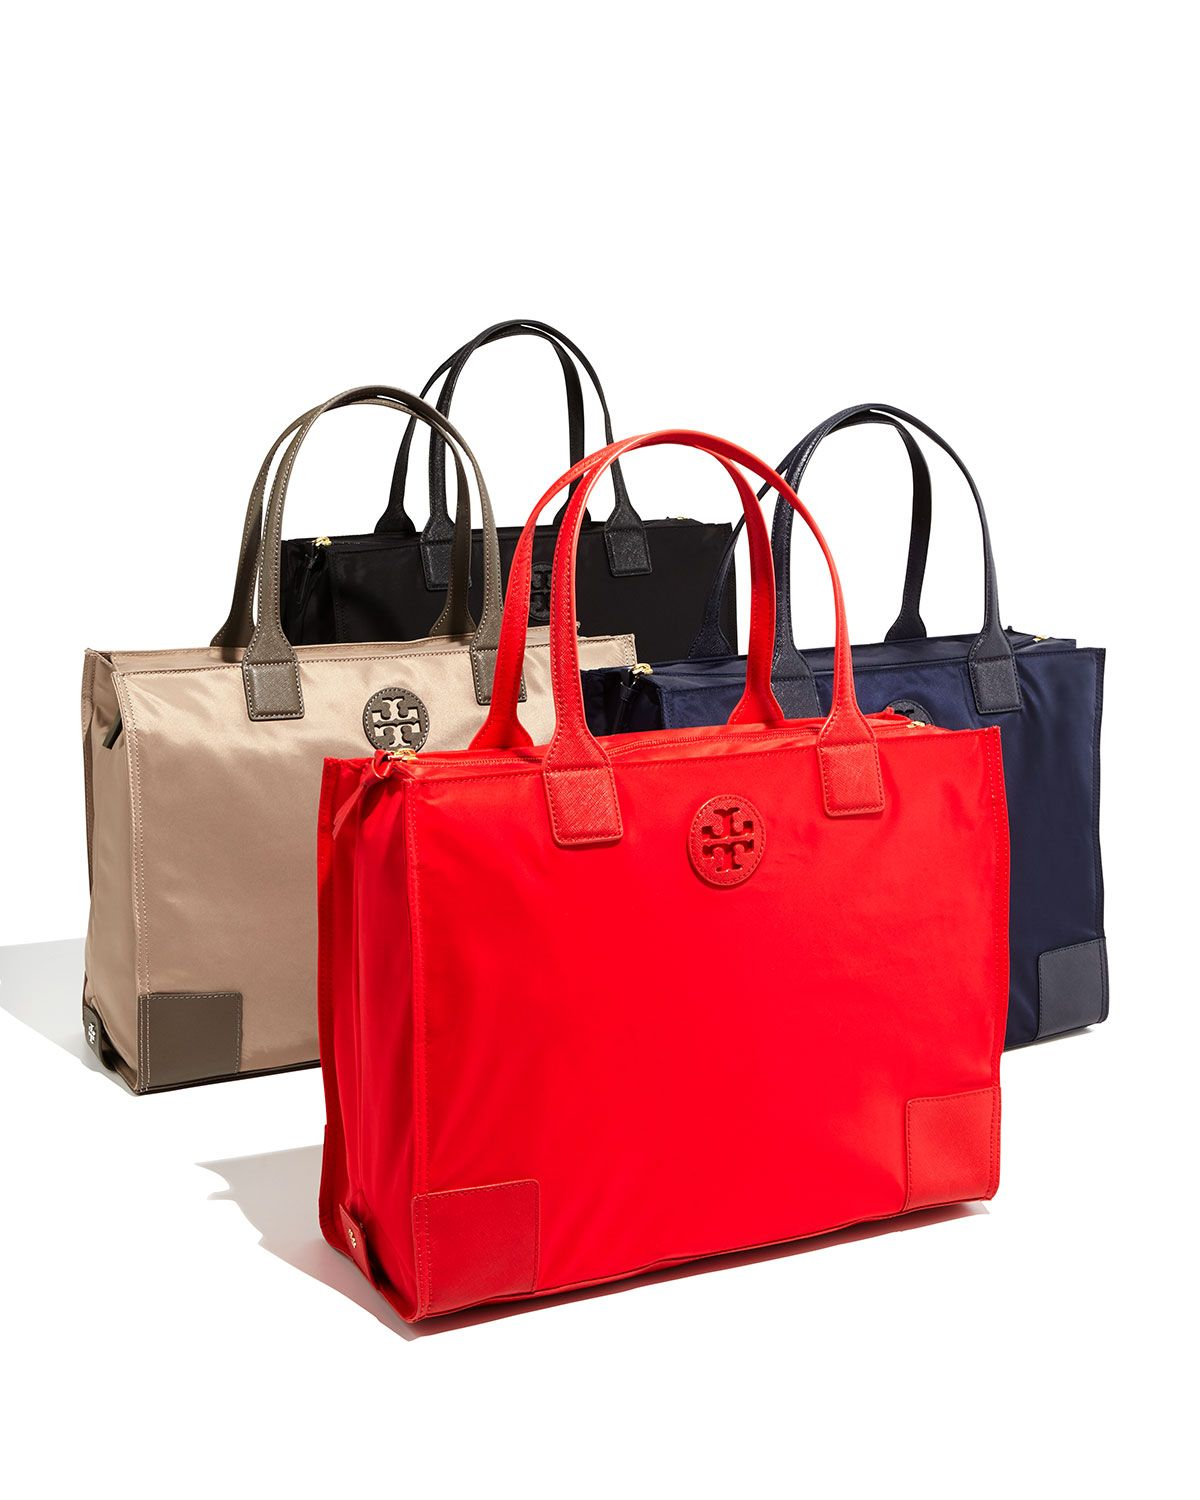 de6bfe19e86b Tory Burch Ella Packable Nylon Tote Bag